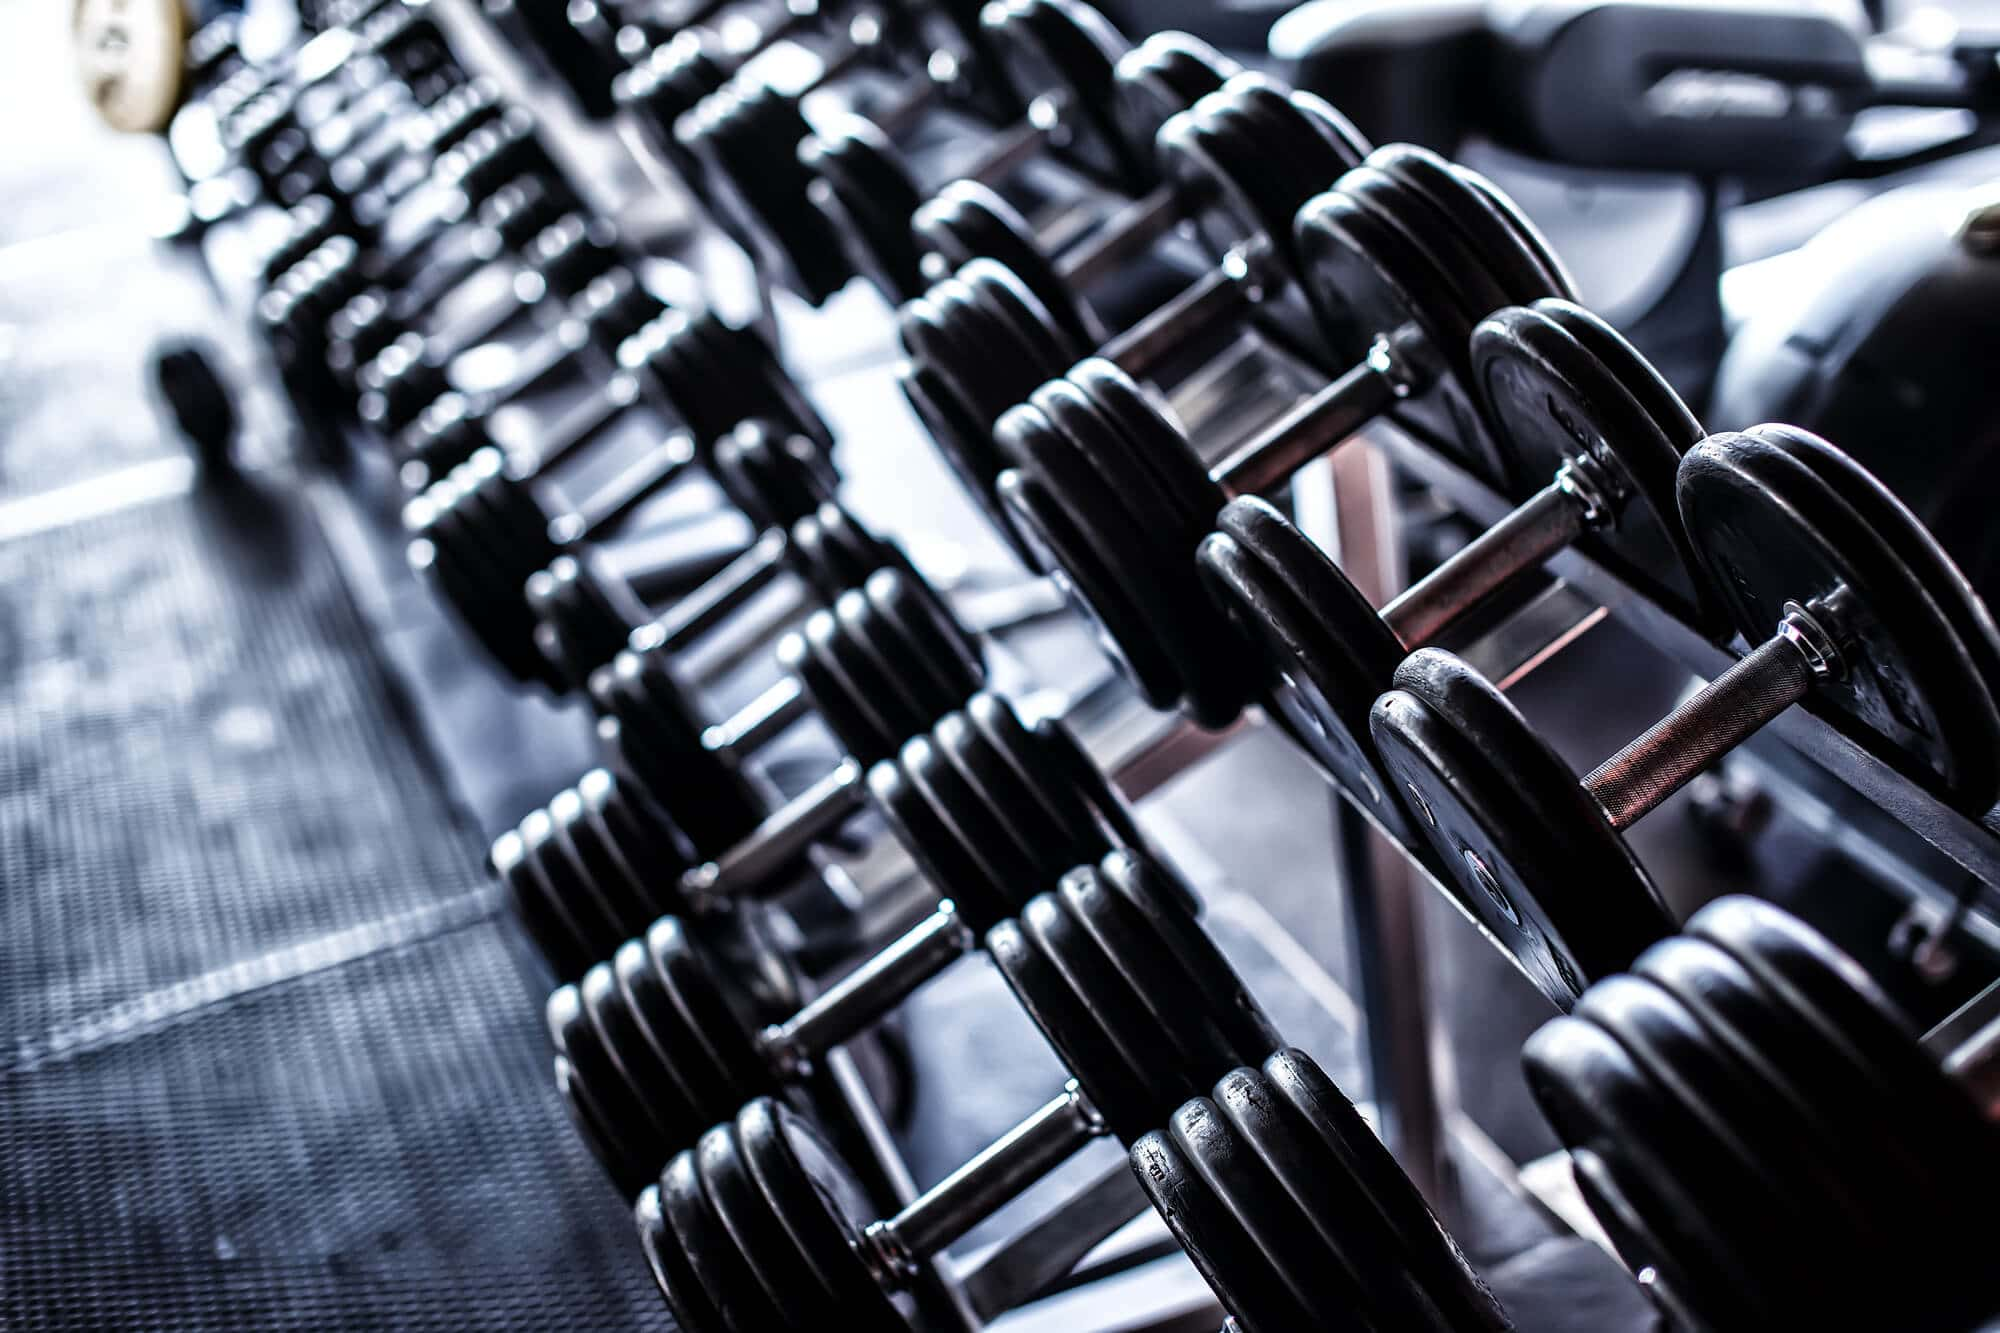 The Best Dumbbells To Use At Home, According To A Trainer